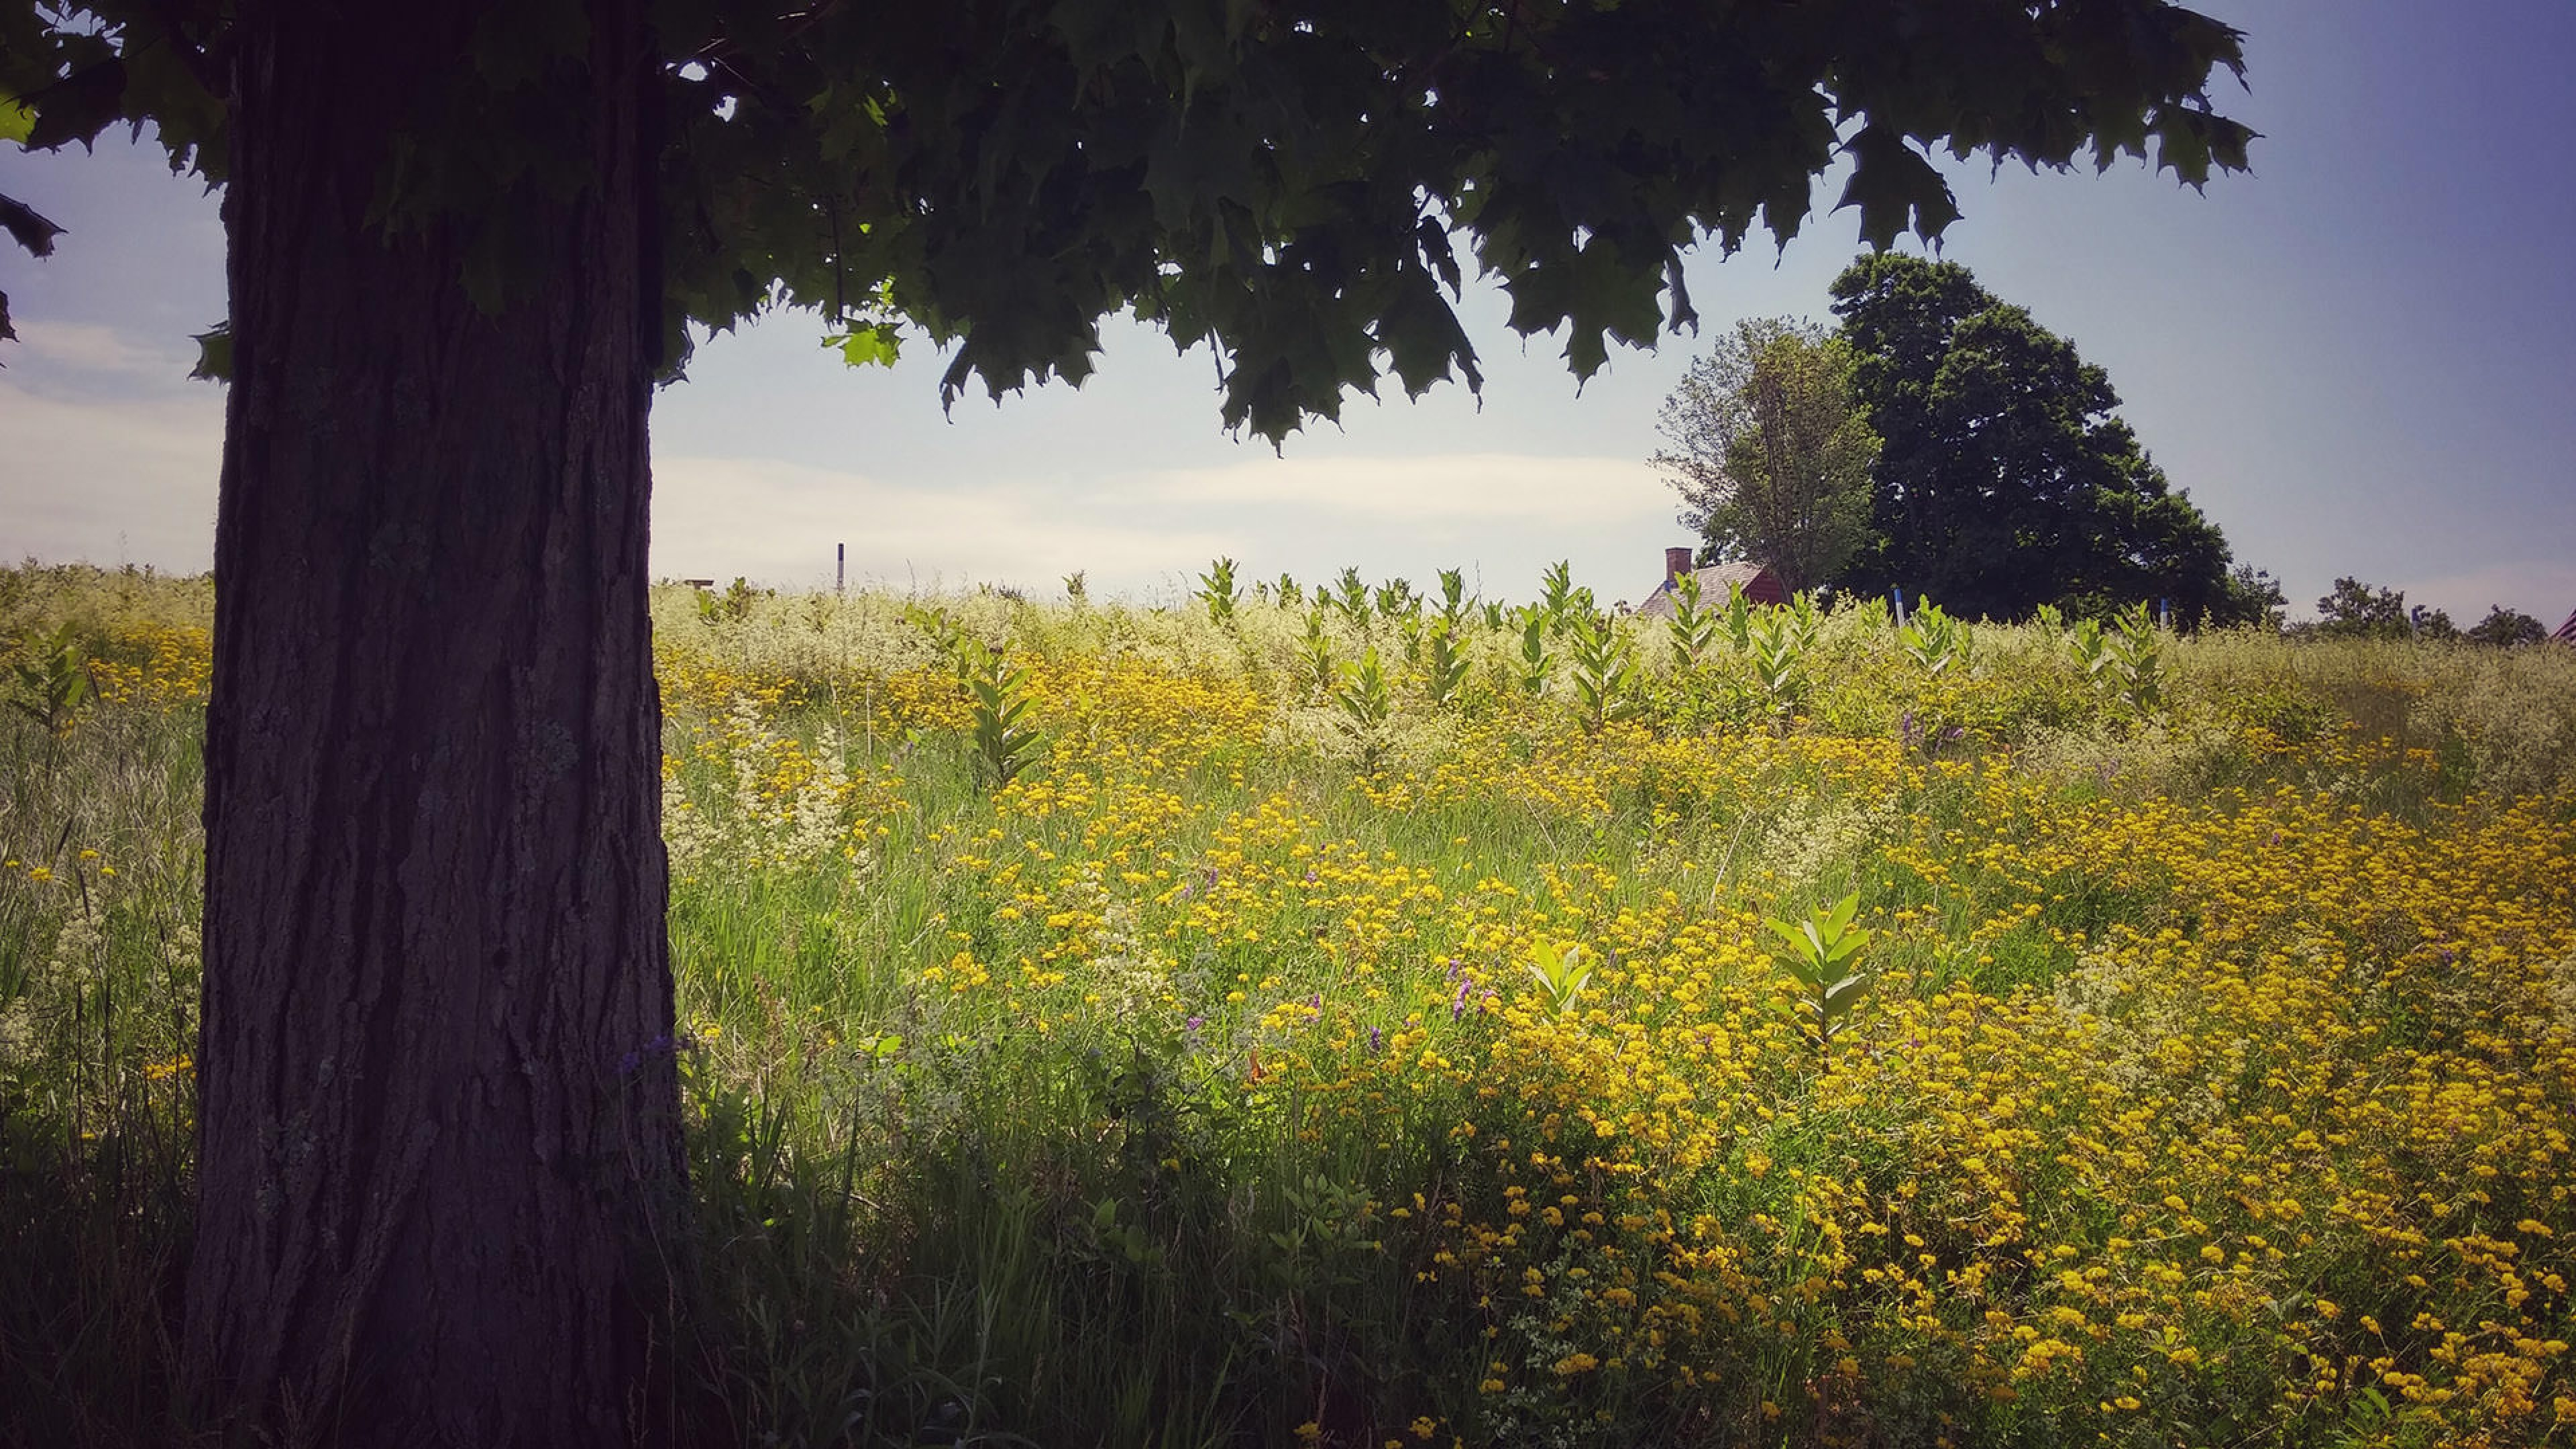 under shaded tree in field of wildflowers